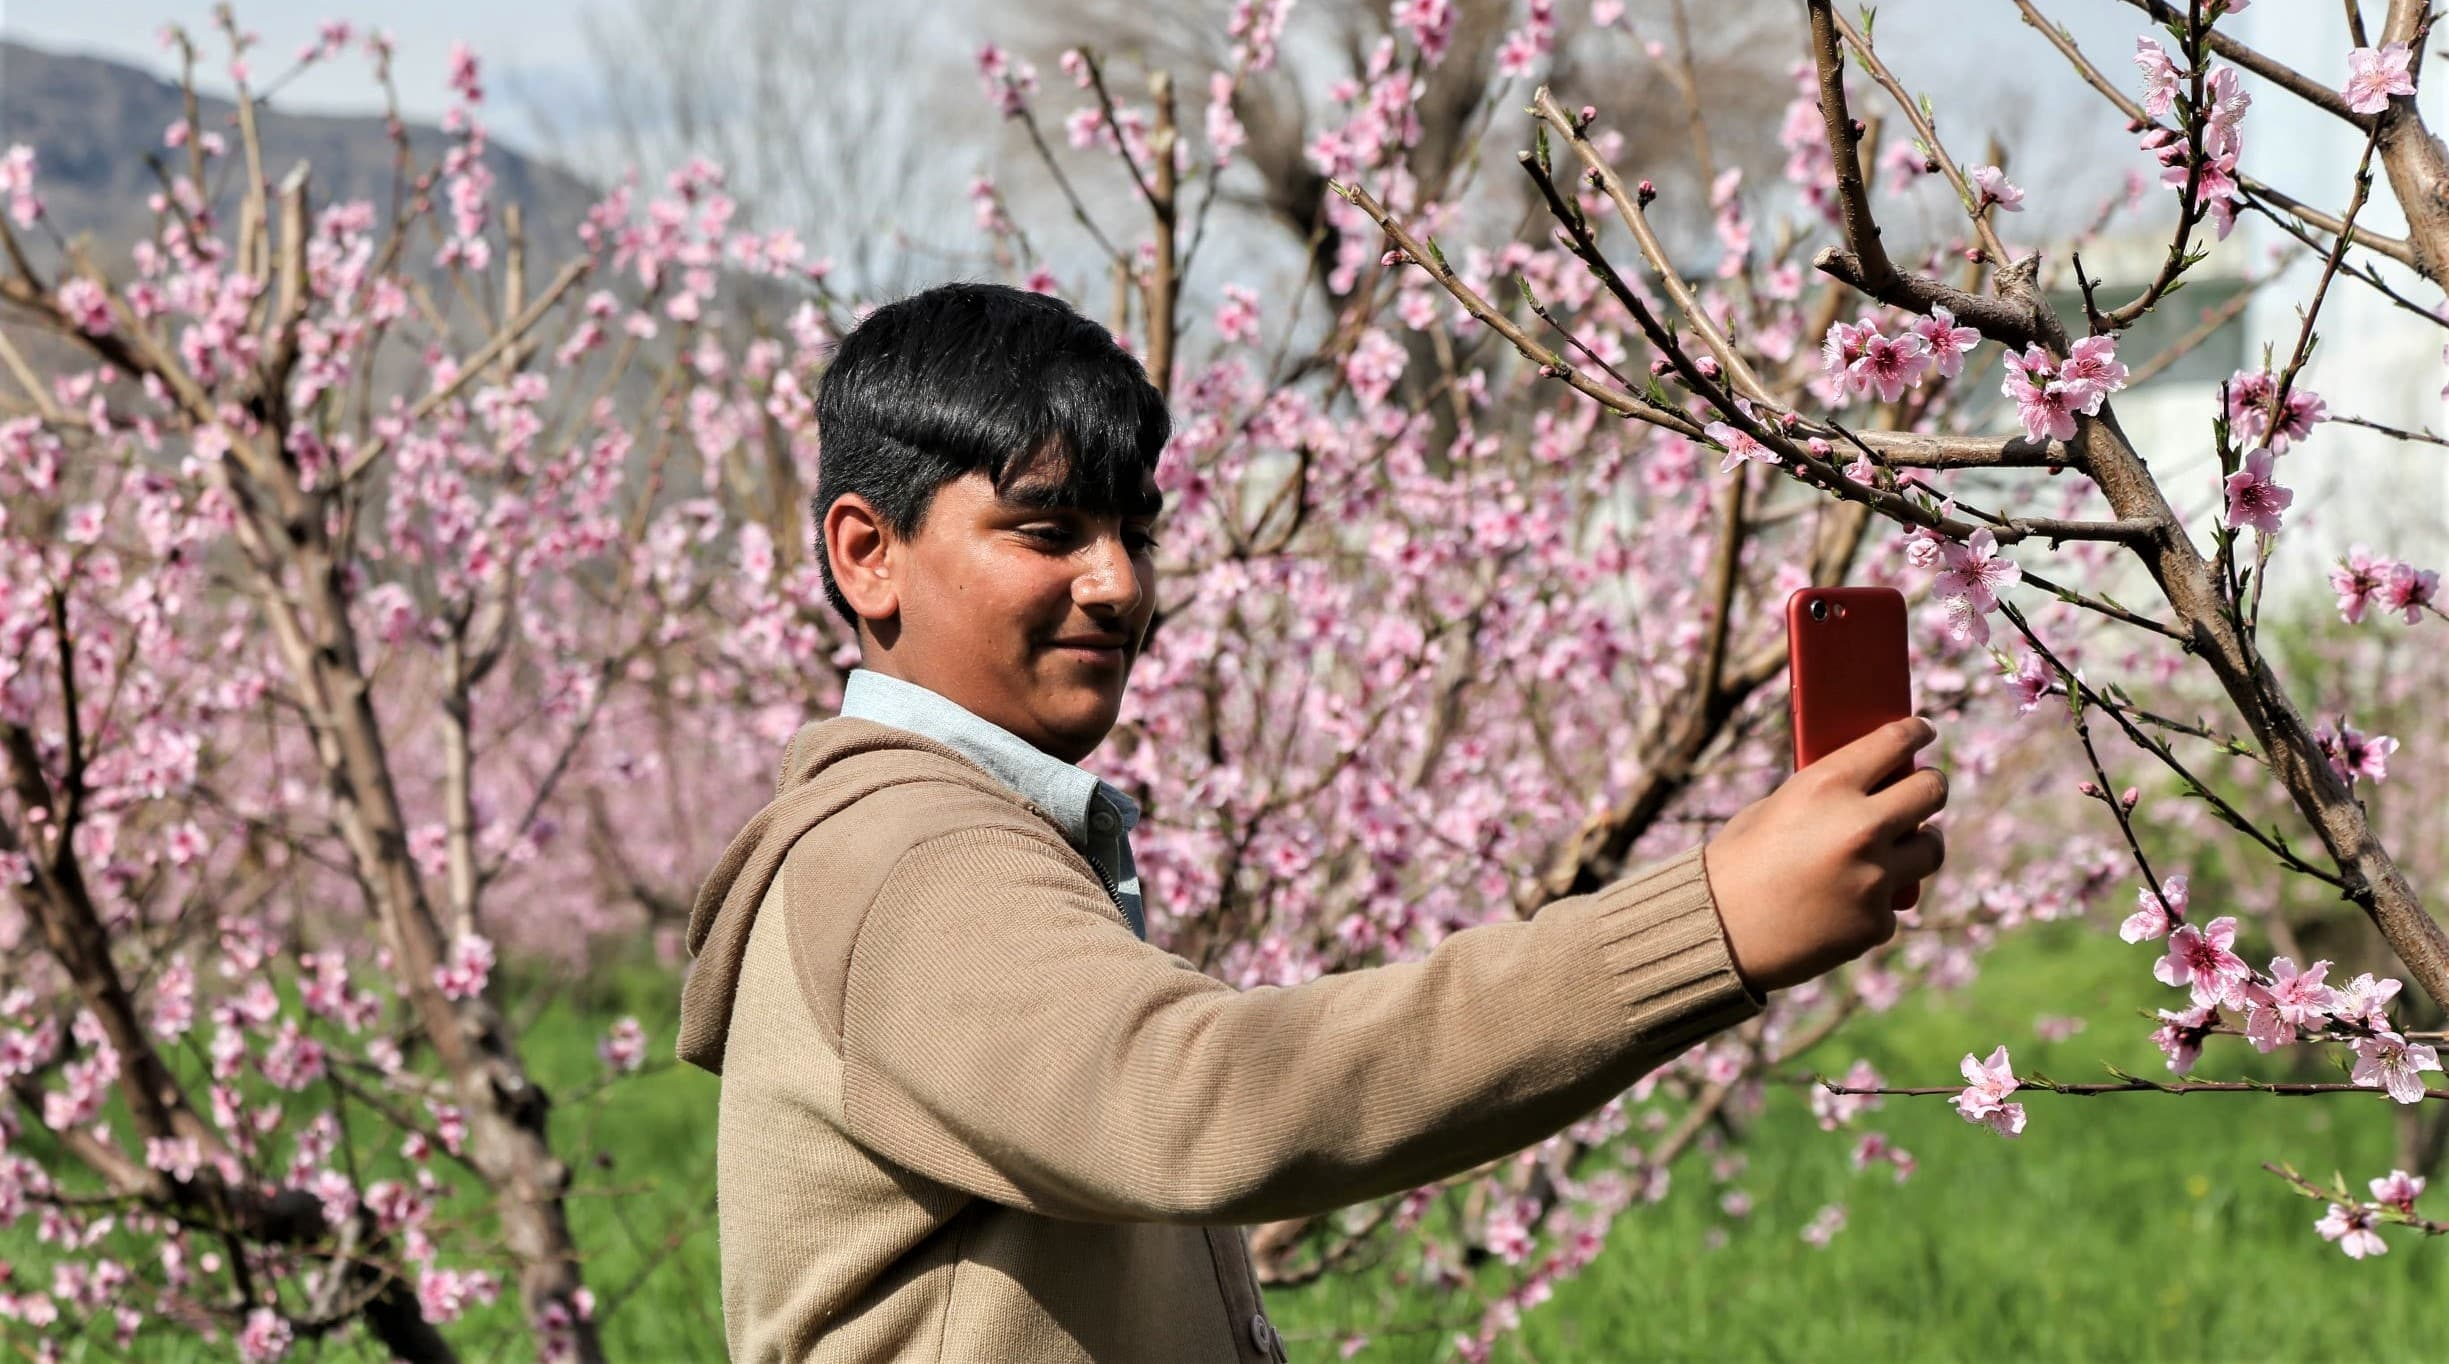 Others were also busy taking selfies with their cell phones in the apricot orchards—Photo by author